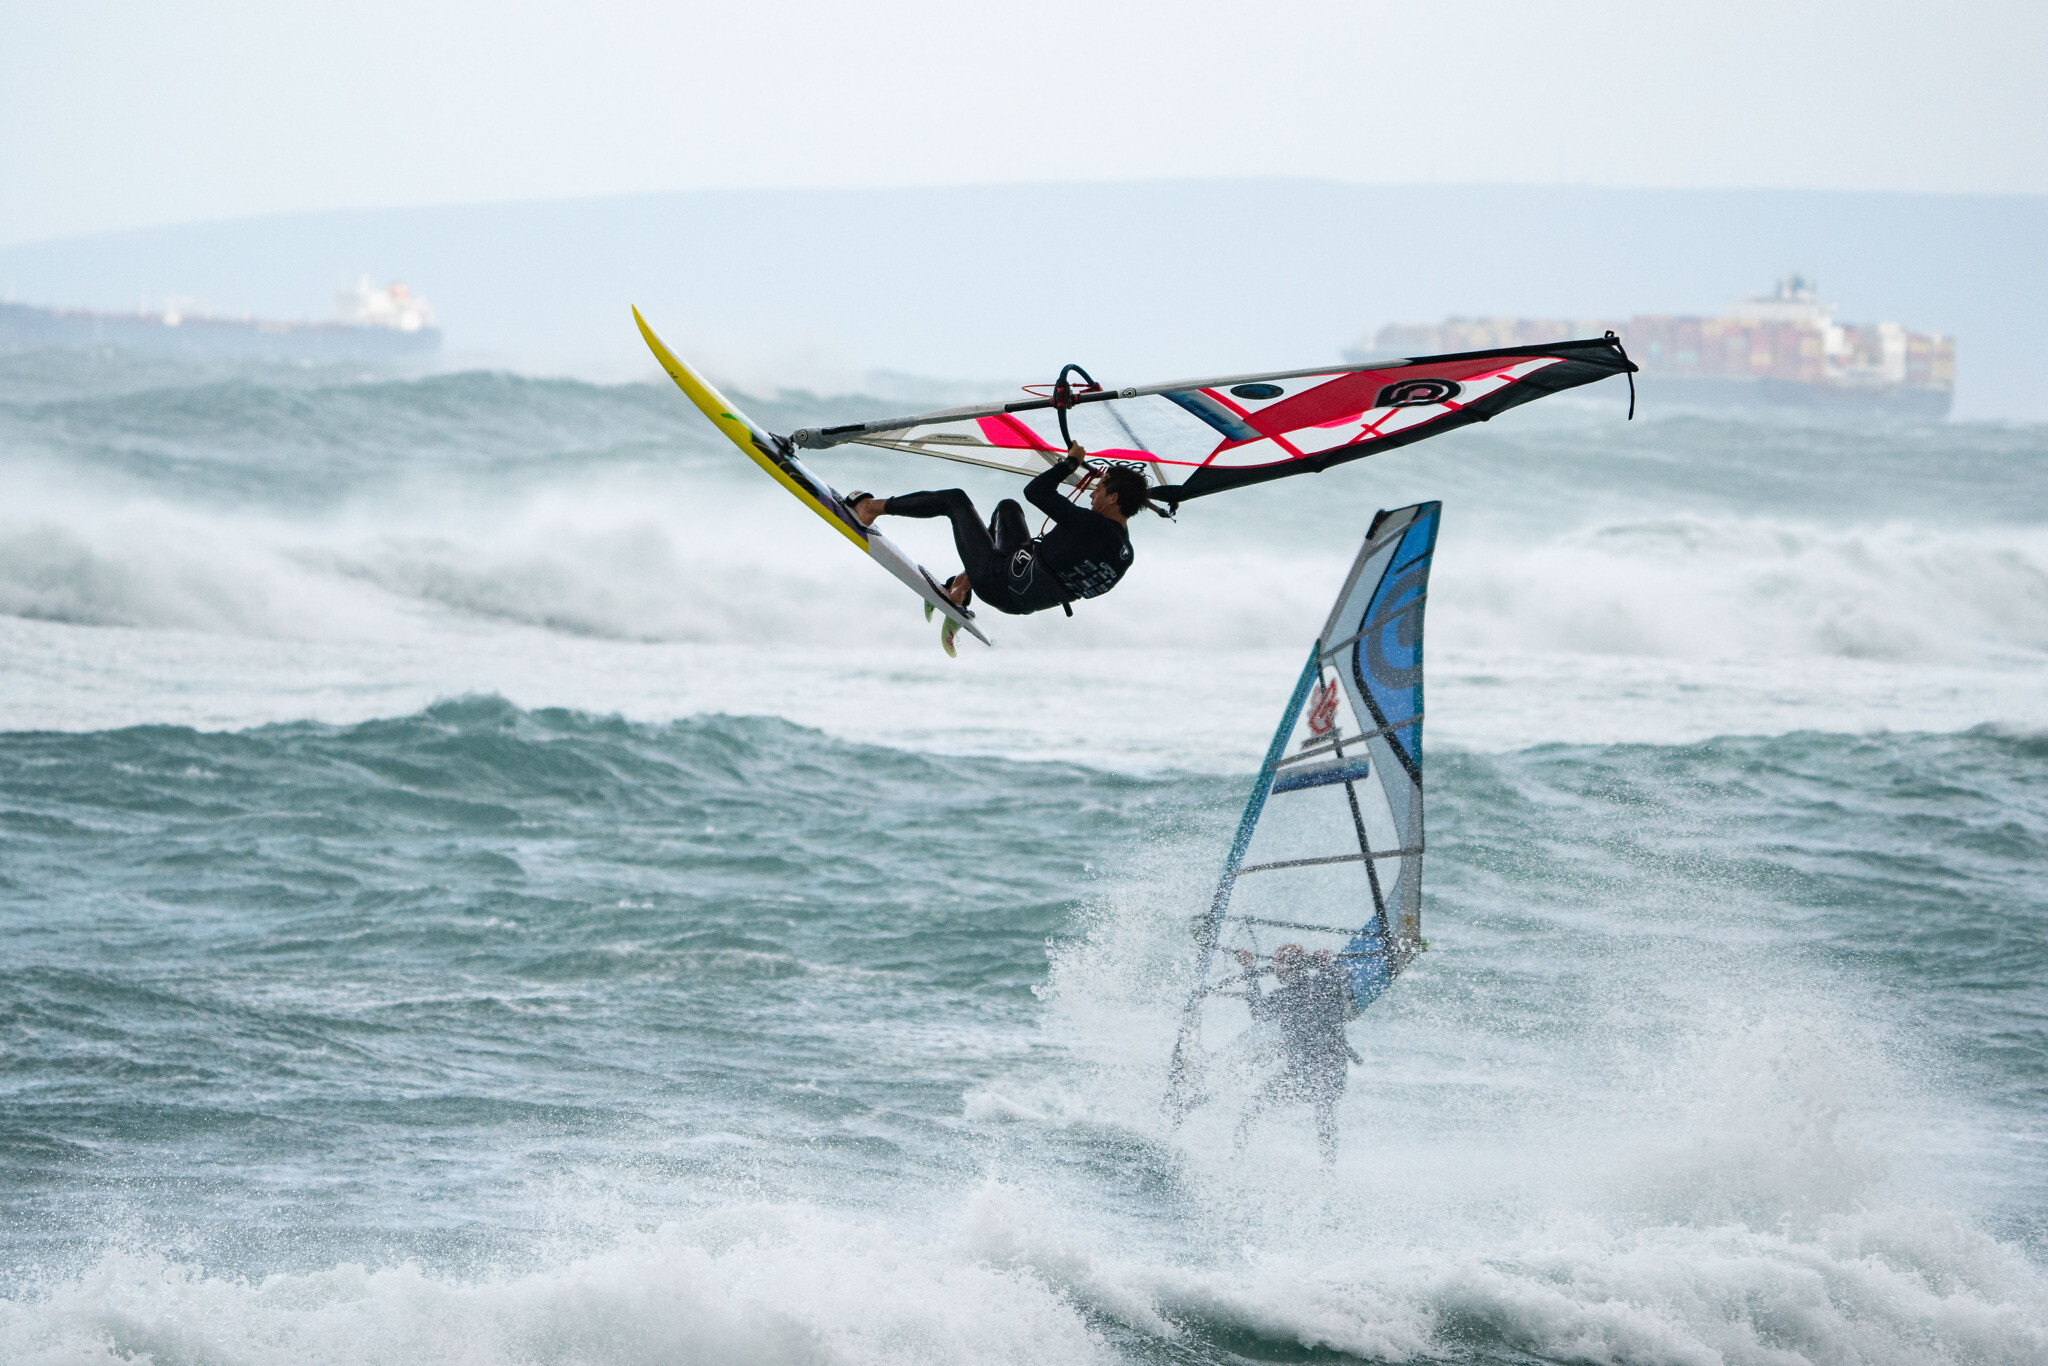 A windsurfer catches air at the extreme Storm Riders competition in Haifa, Wednesday, February 17, 2021. (Photo by Uri Magnus/ www.urimagnus.com)